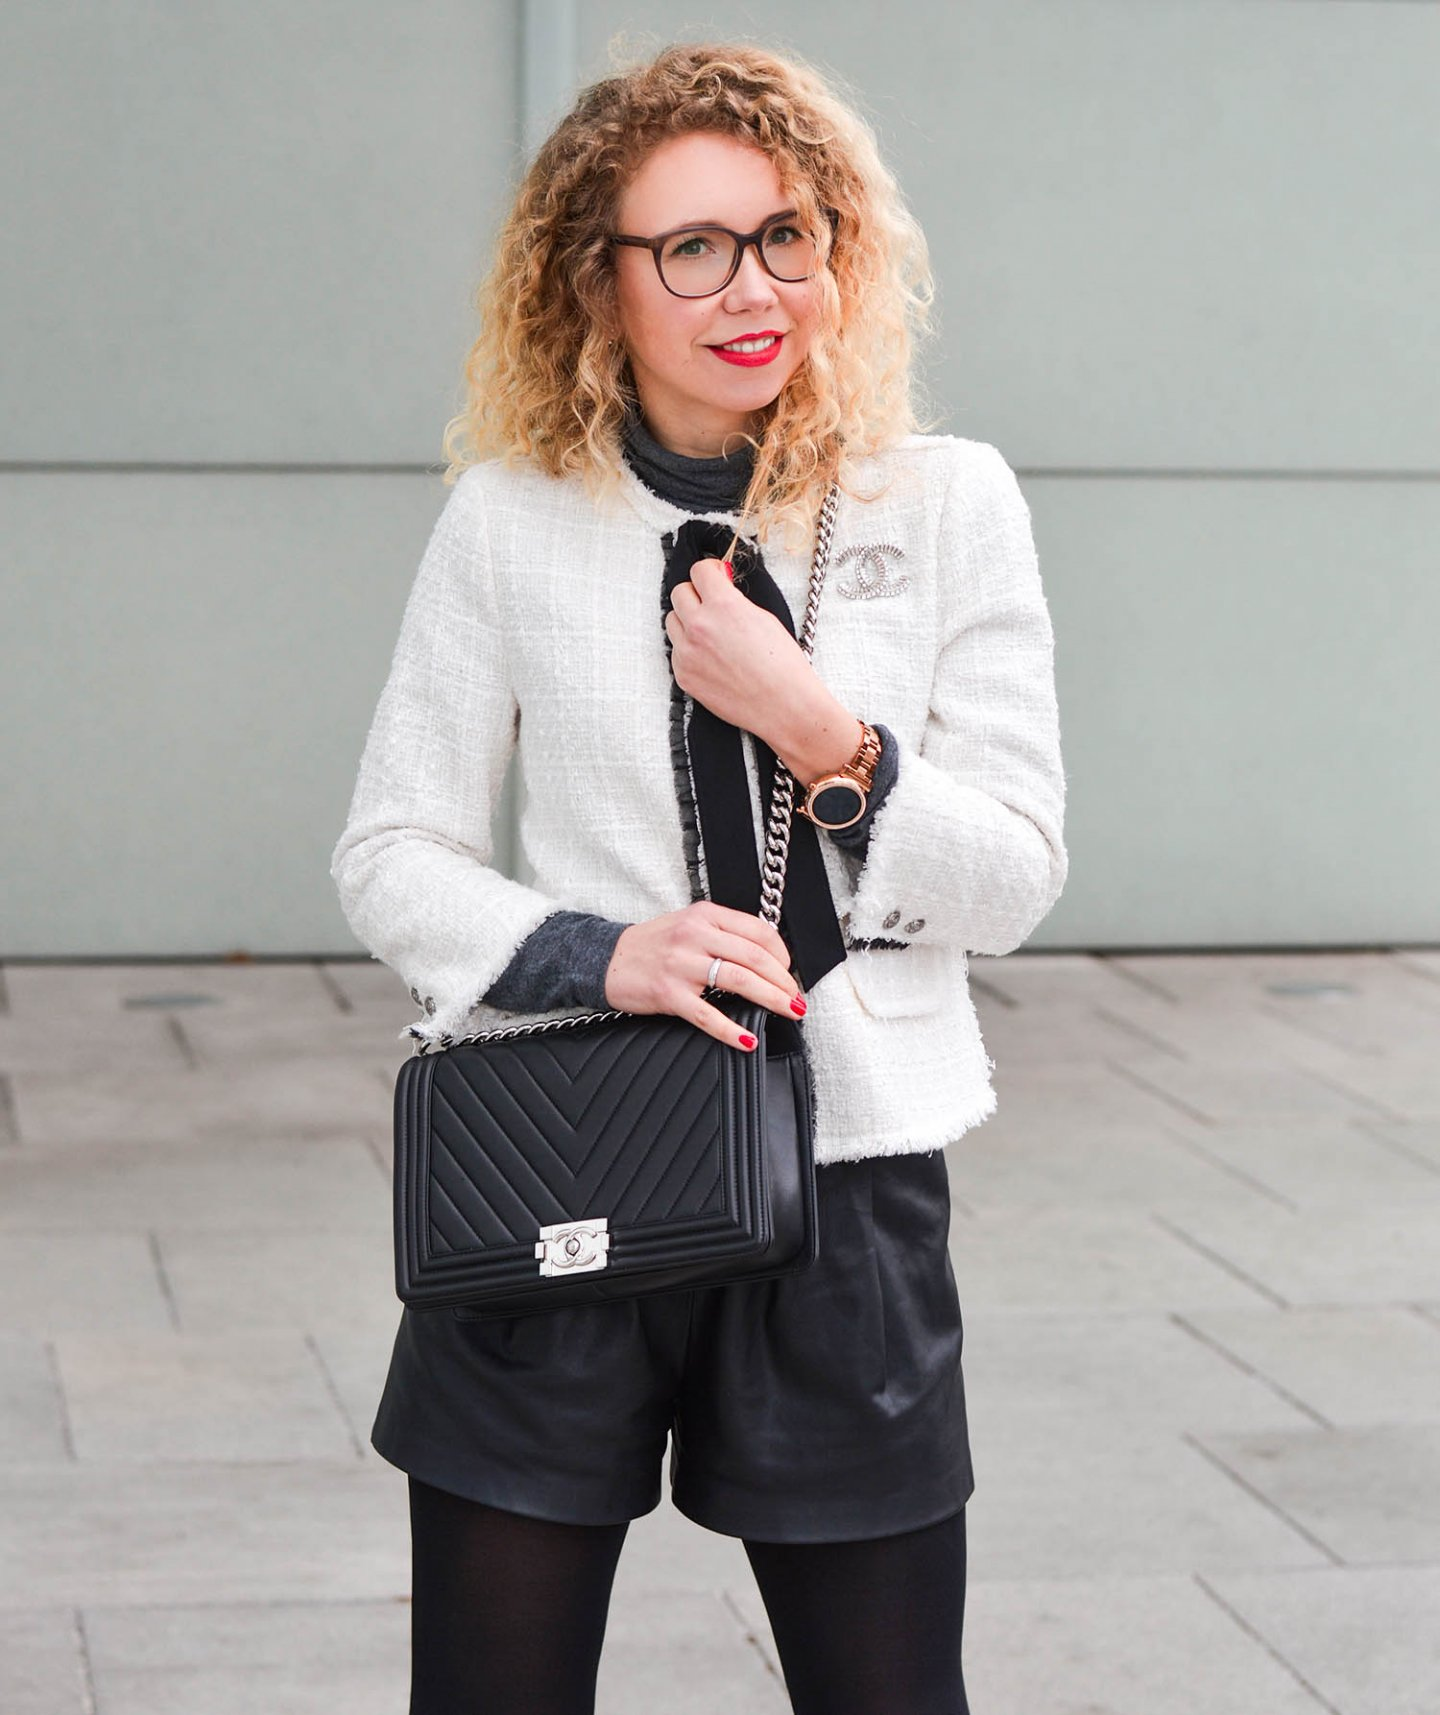 Chanel-Boy-Bag-Der-erste-Look-mit-meiner-Traumtasche-Kationette-Fashionblog-Germany-Outfit